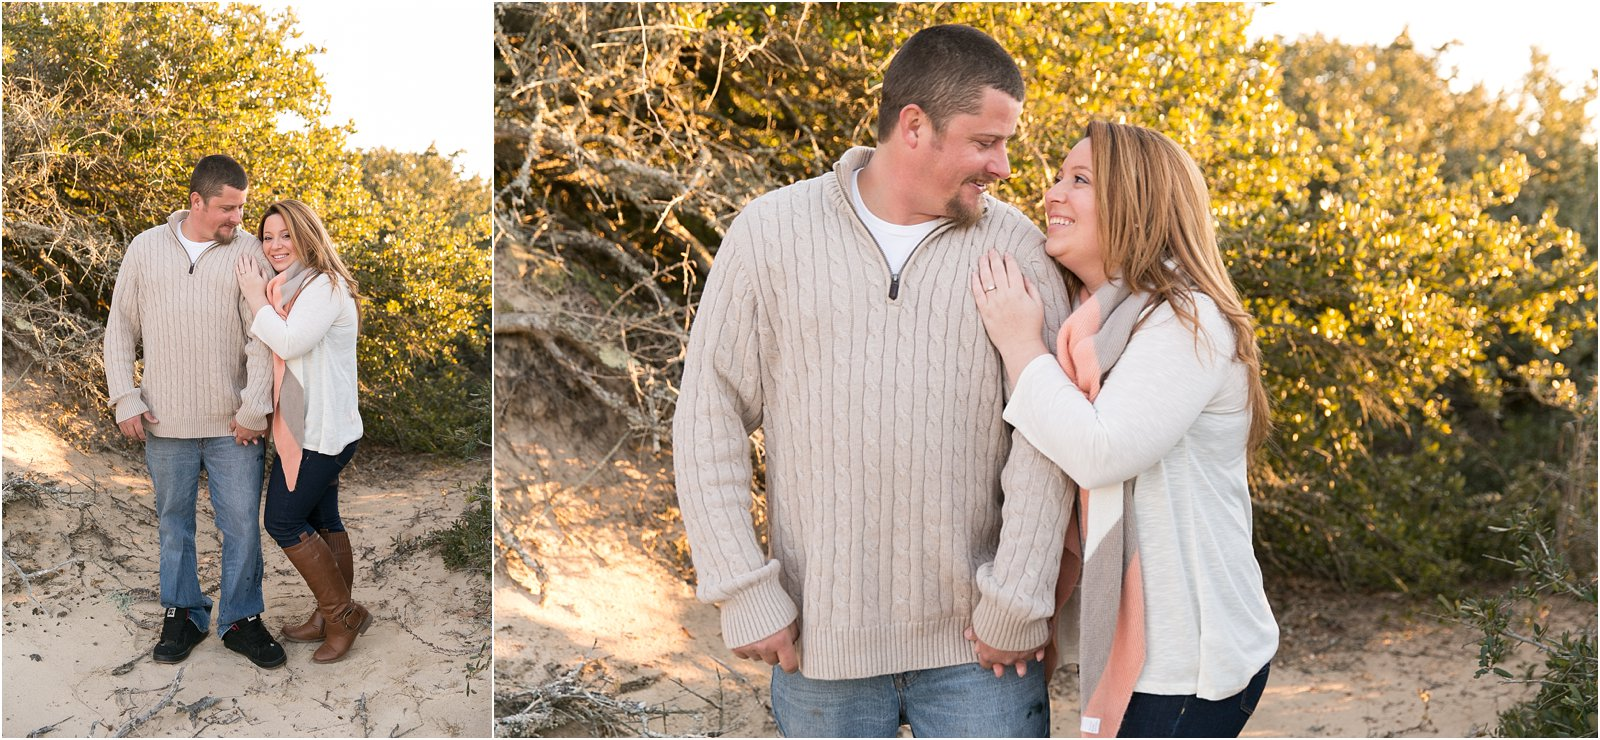 jessica_ryan_photography_pumpkin_patch_engagement_portraits_fall_october_engagements_virginia_beach_chesapeake_0316